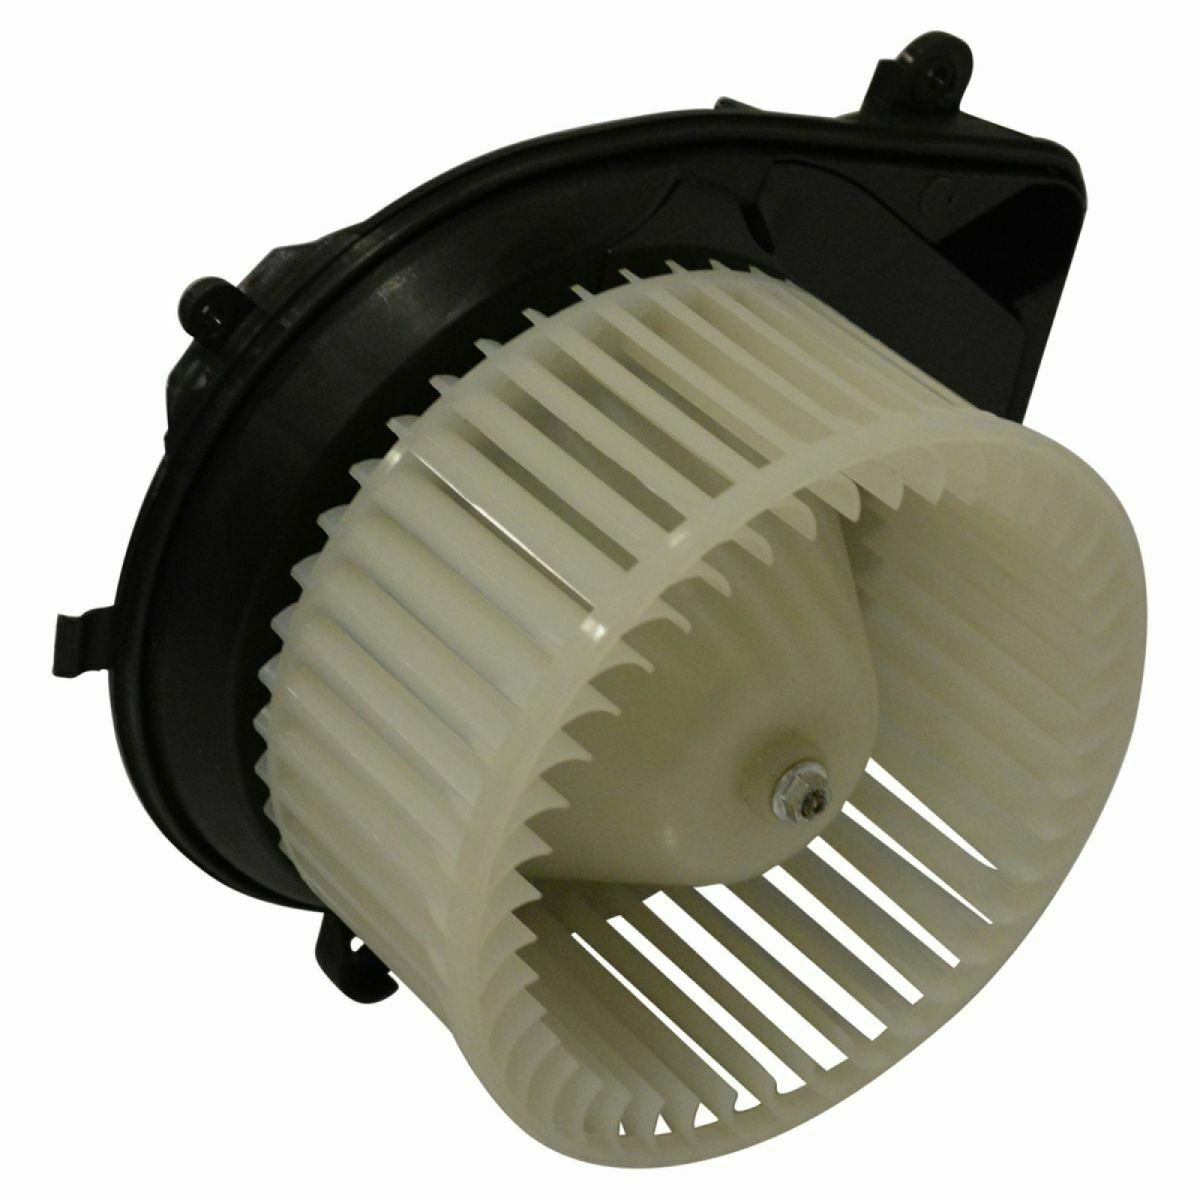 Heater Blower Motor W Cage For Vw Passat Audi A4 S4 50